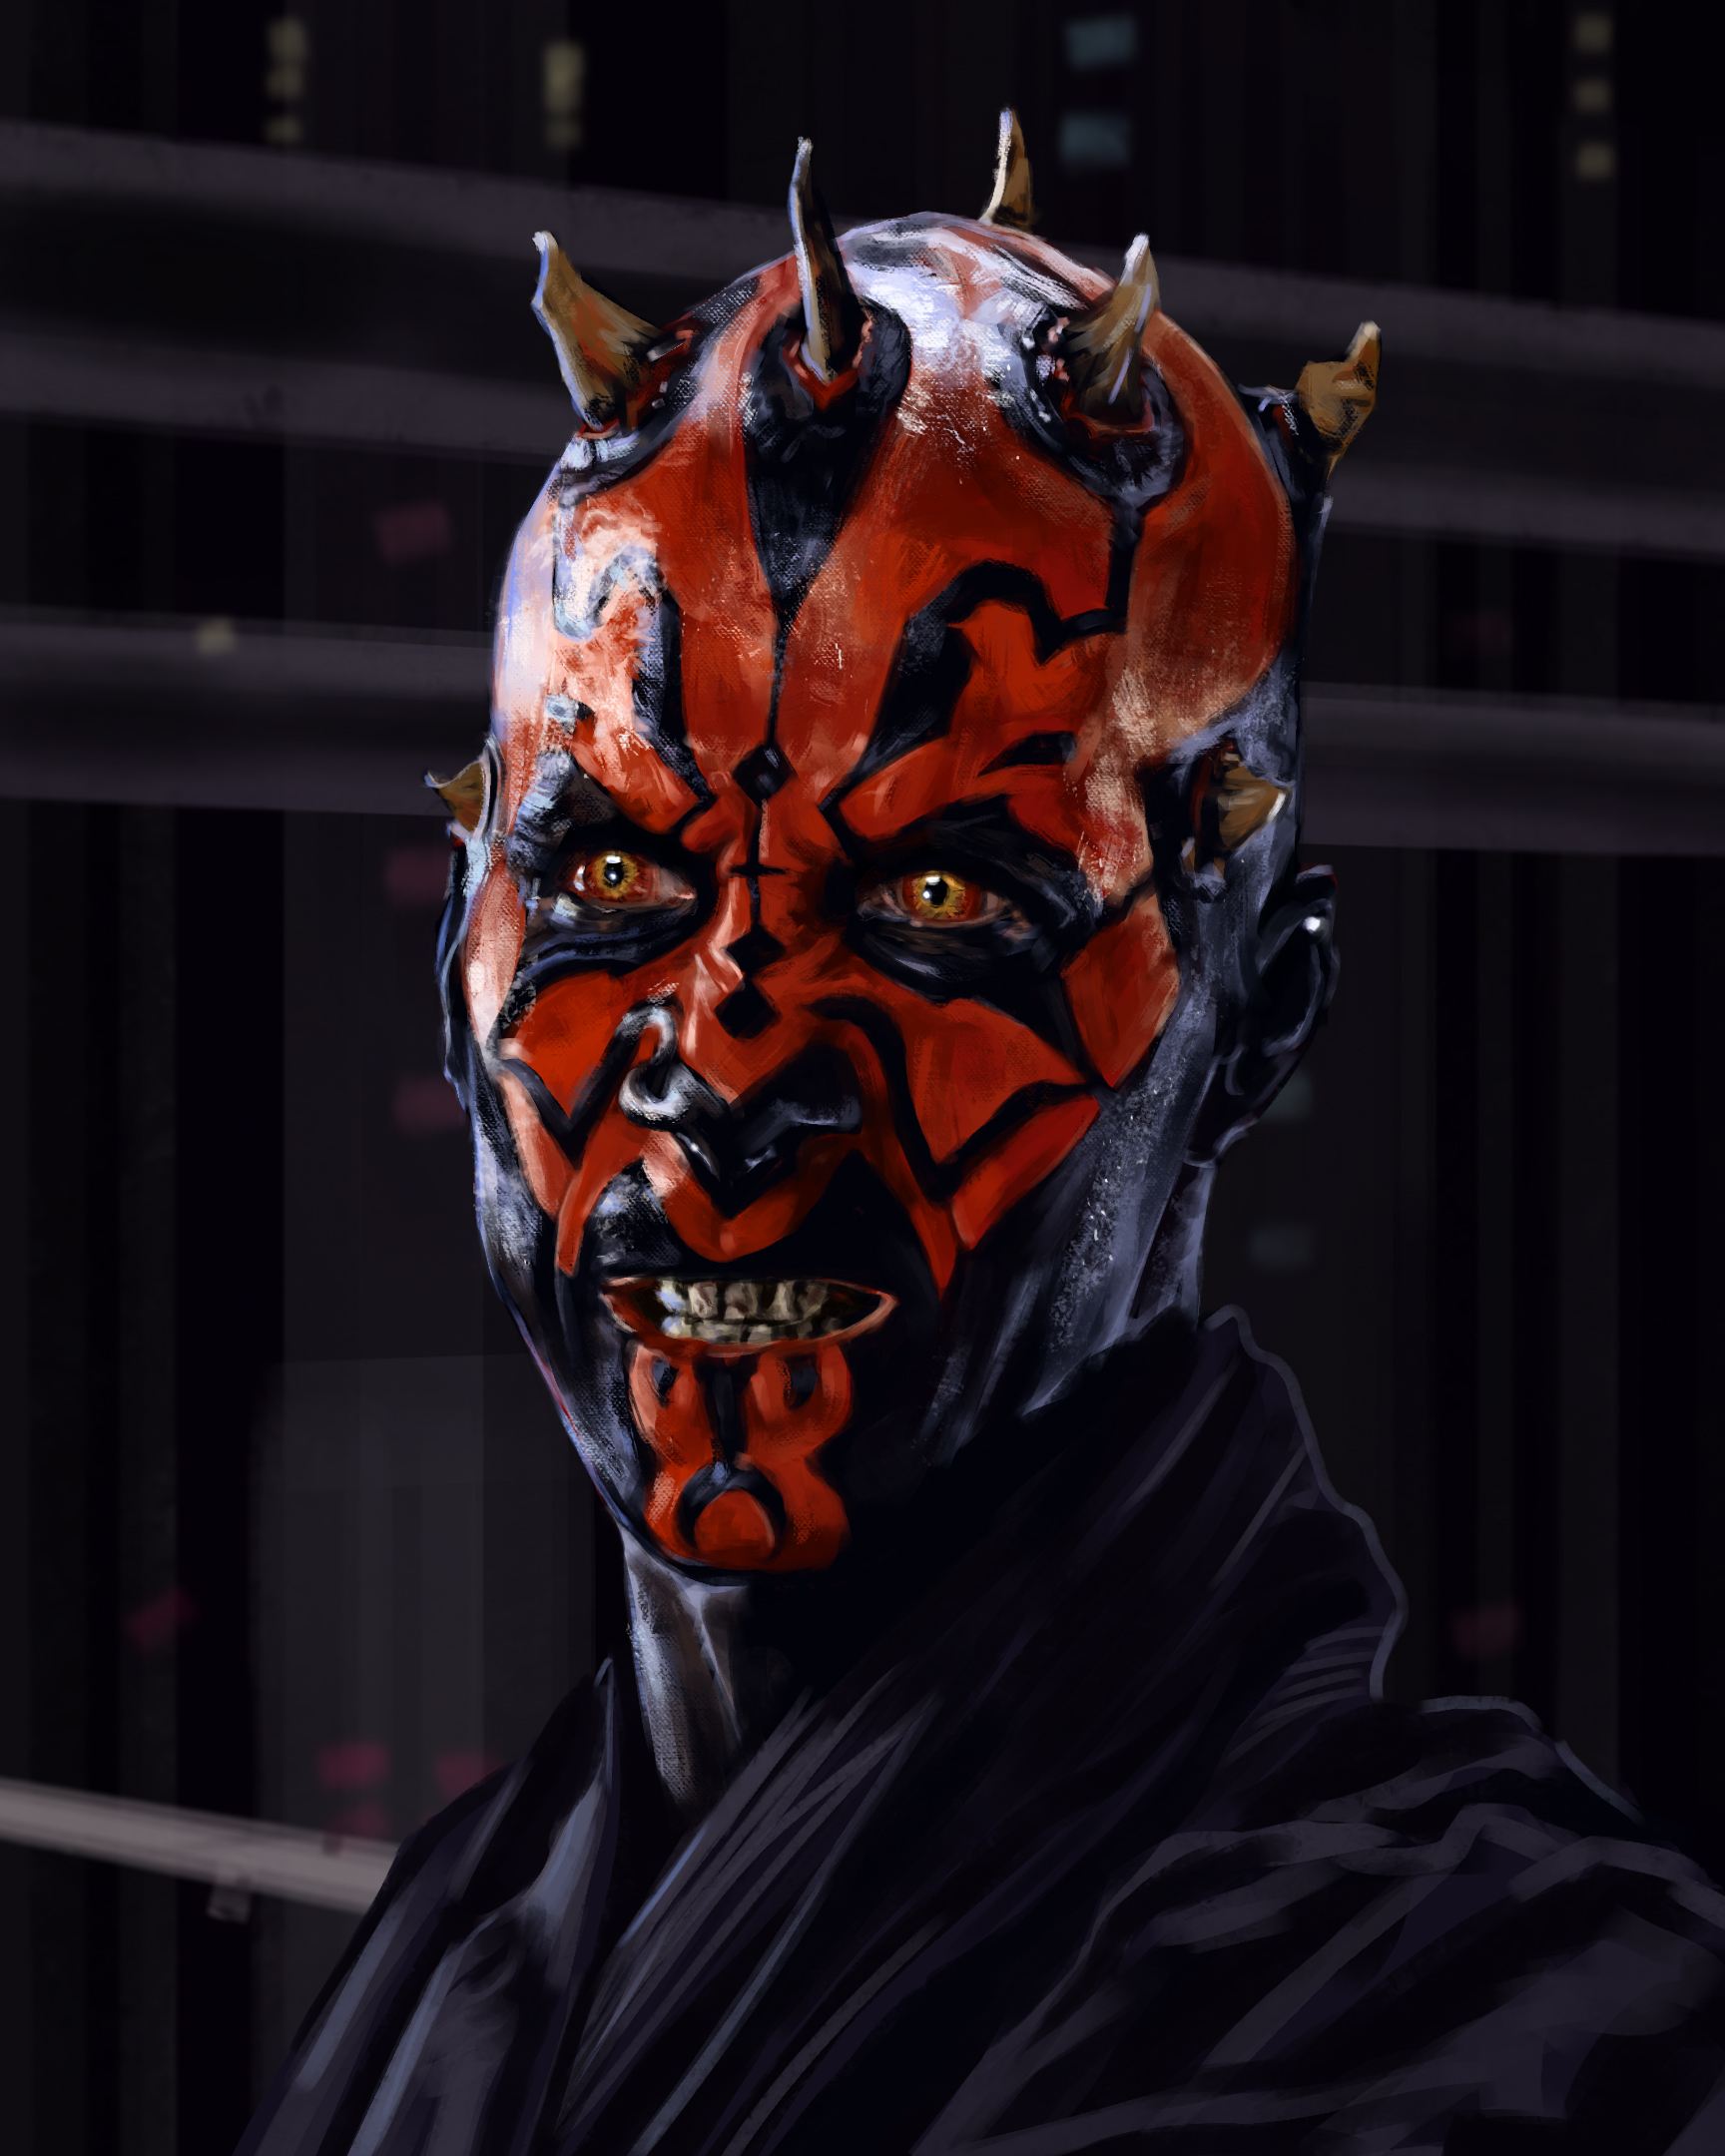 I painted Darth Maul